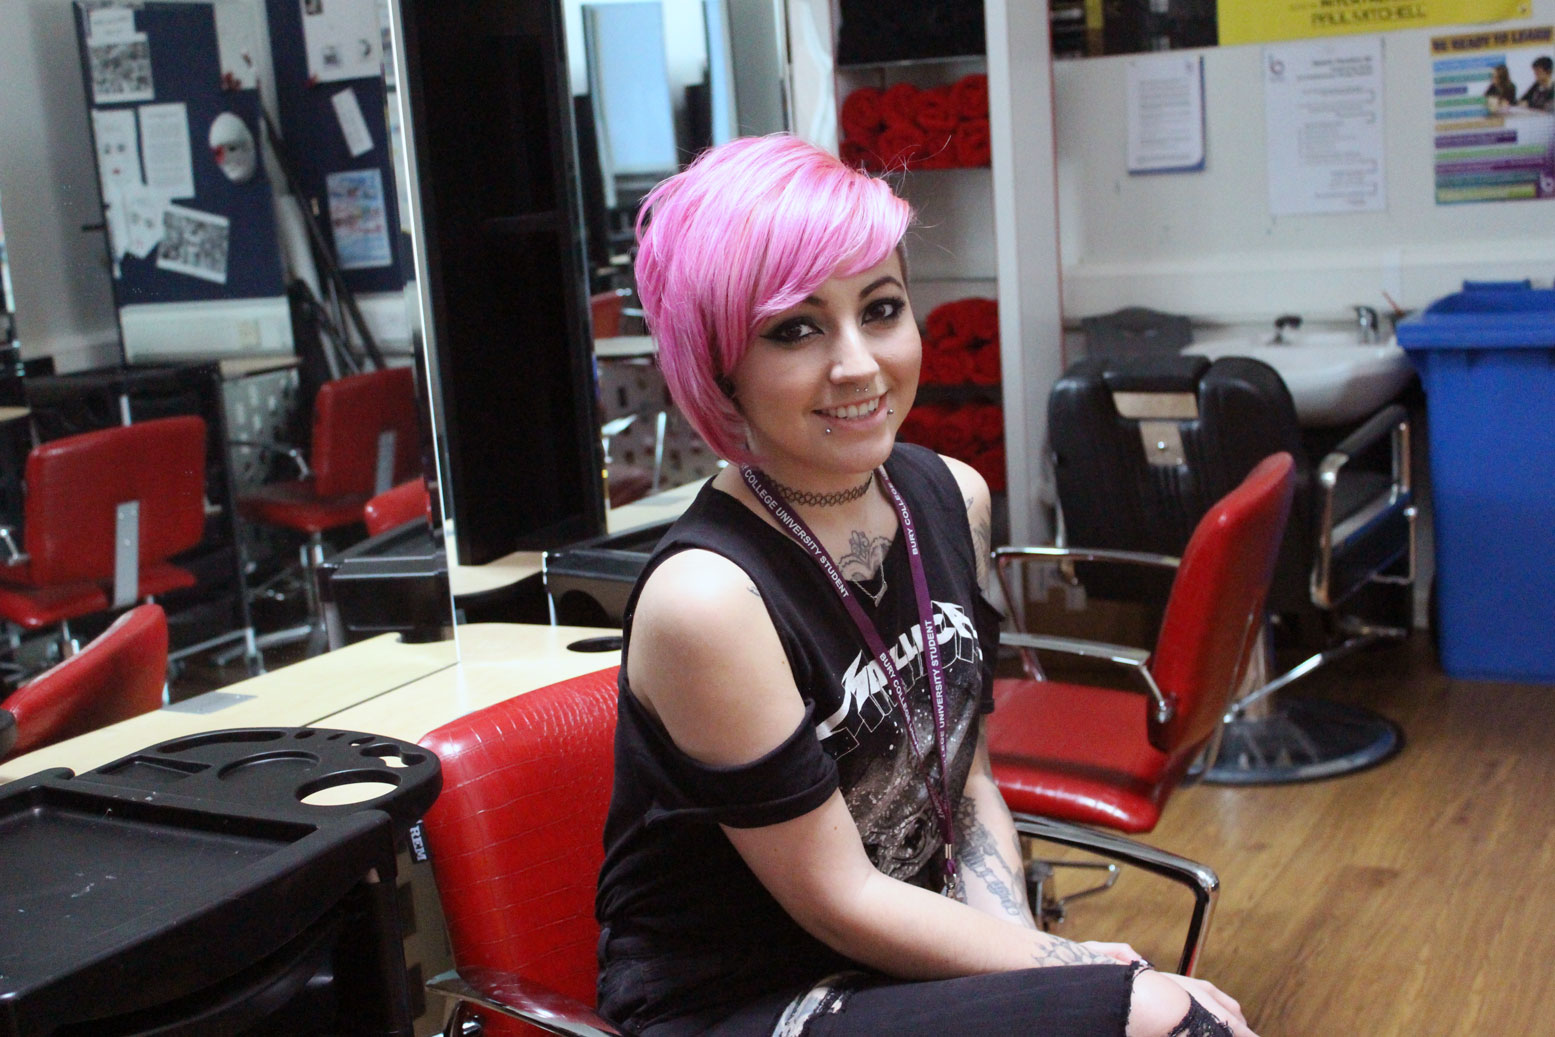 Hairdressing Student Shortlisted for Coveted Award